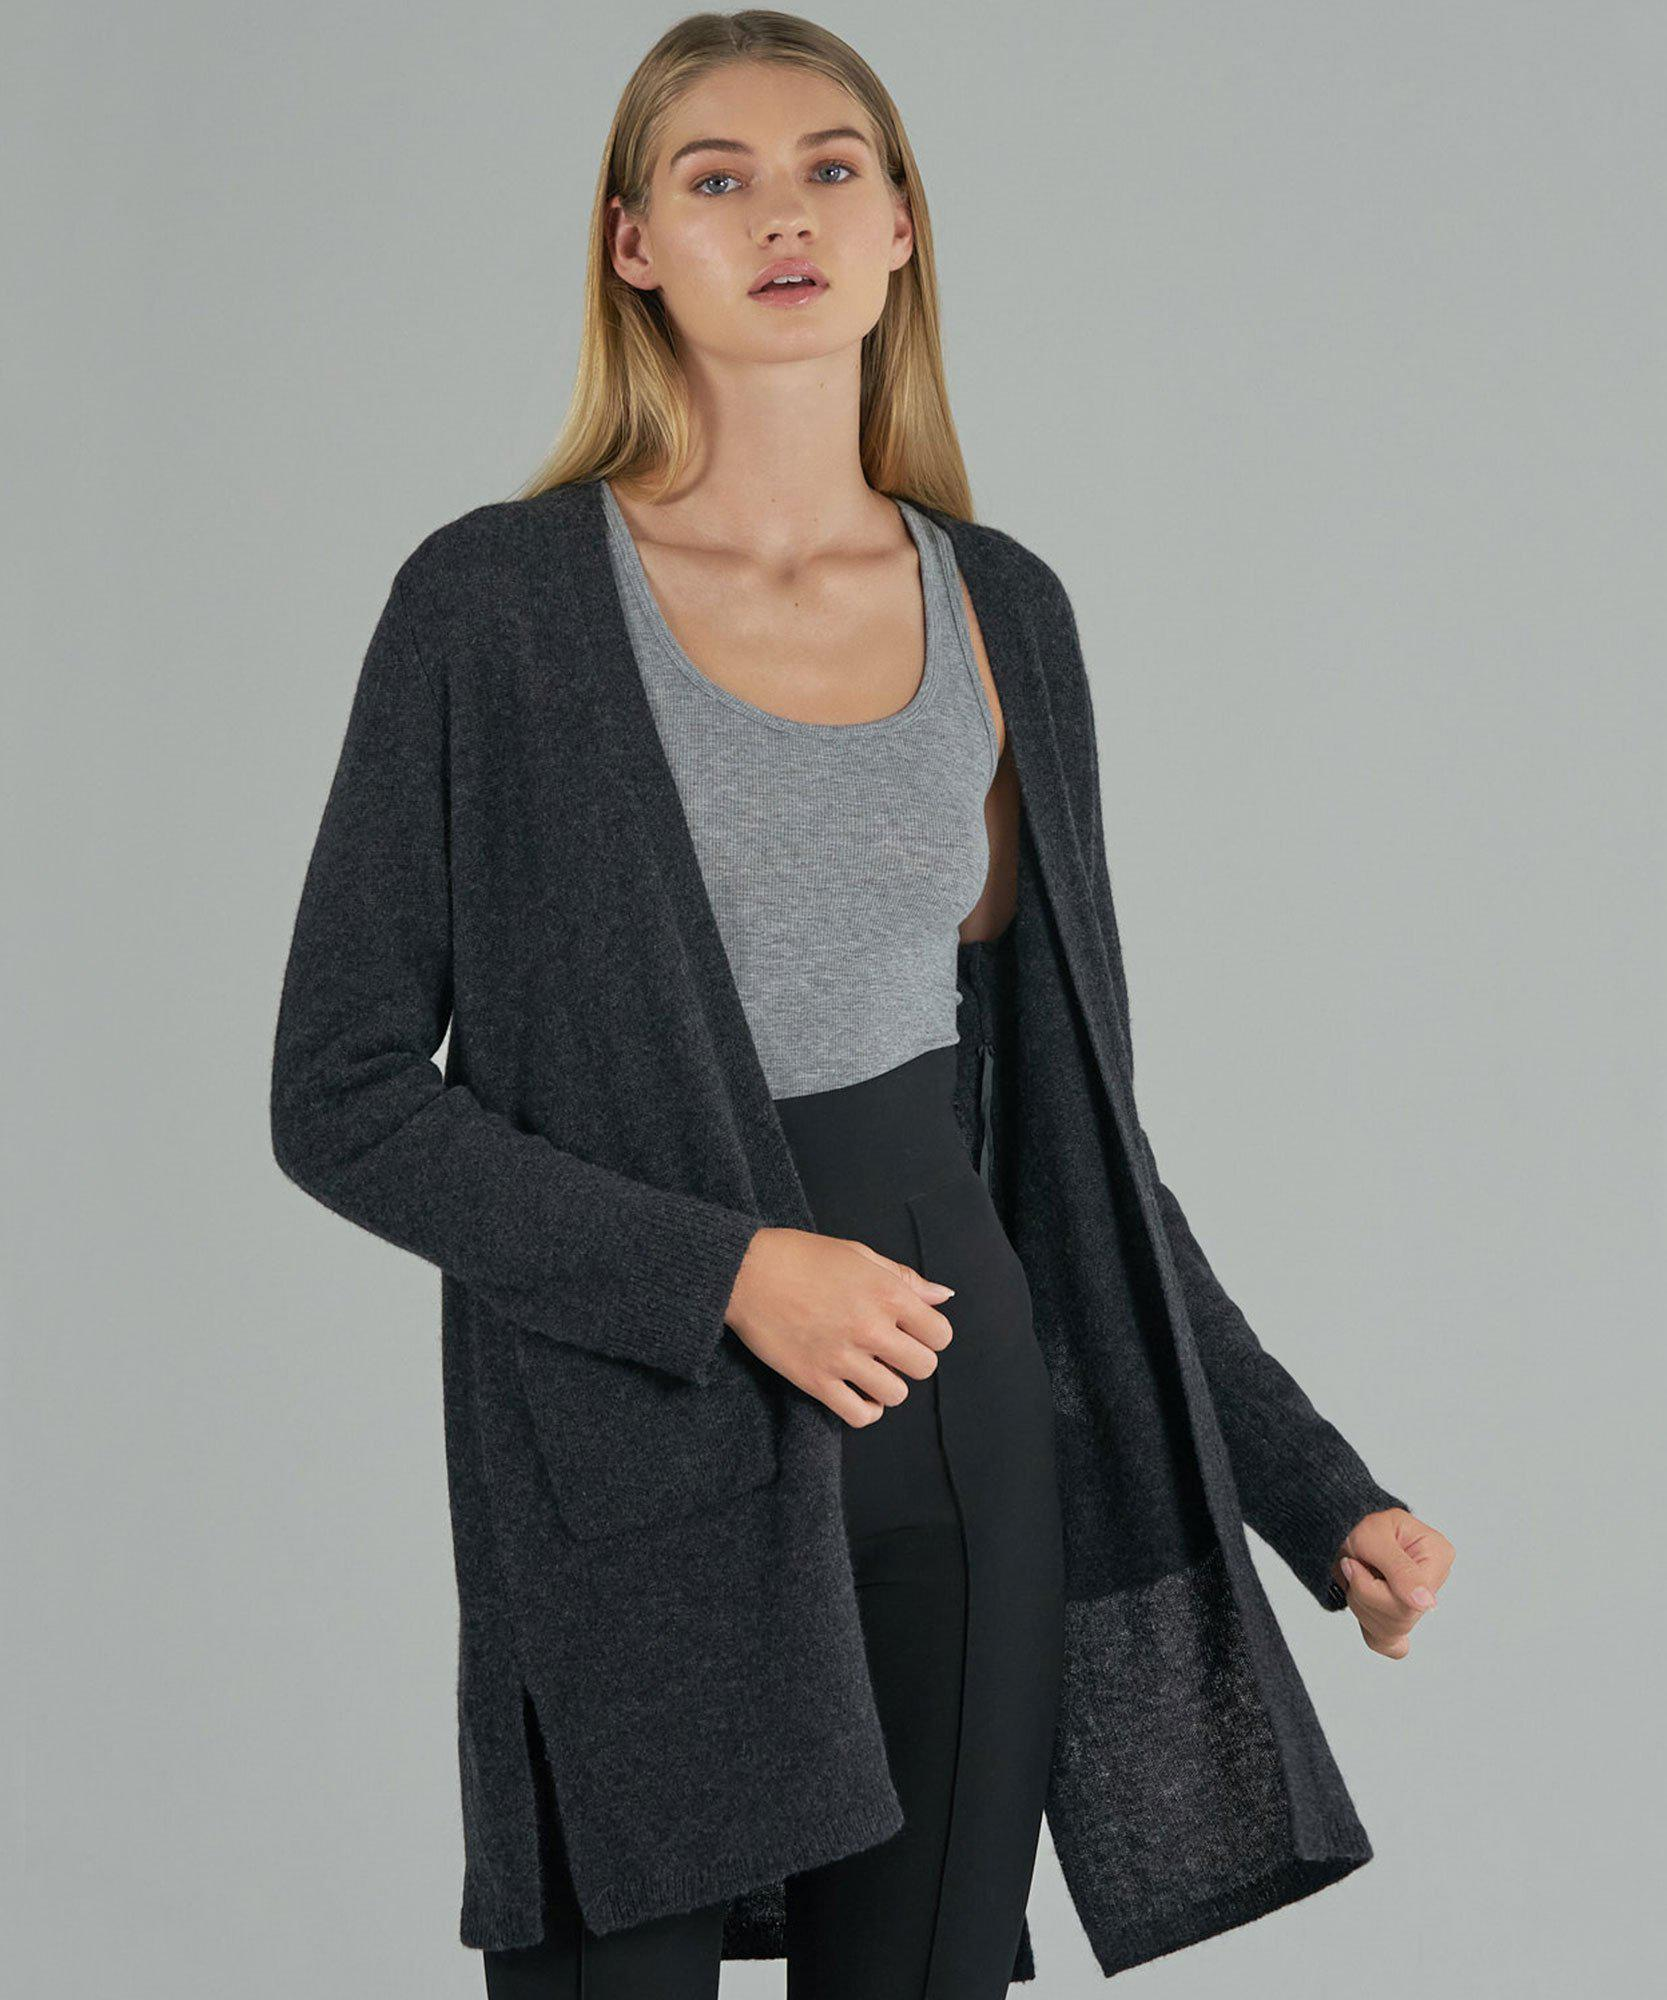 Cashmere Cardigan - Charcoal